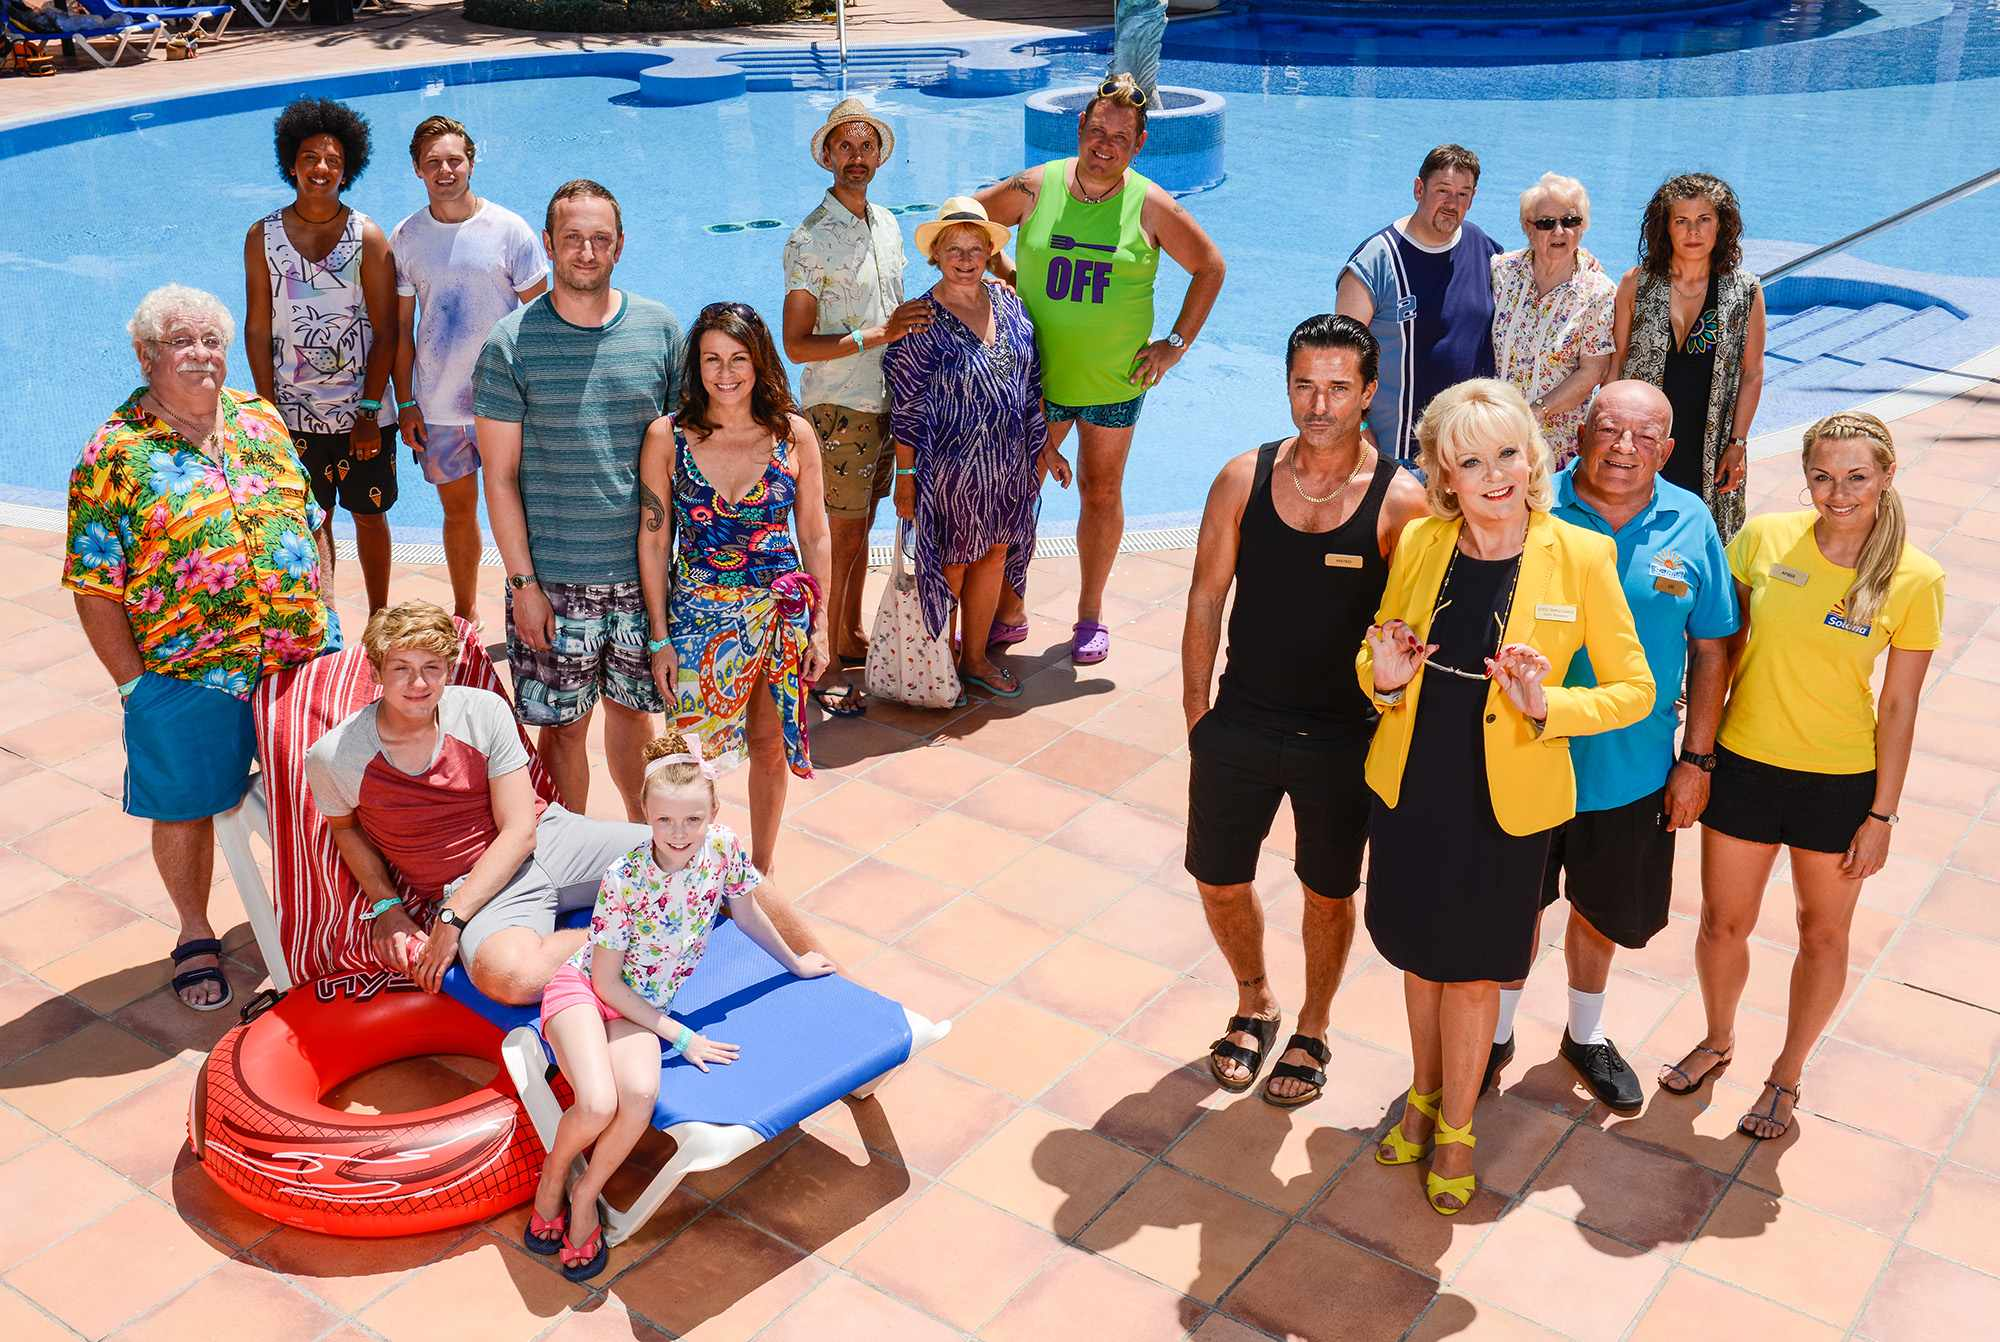 Benidorm cast photo